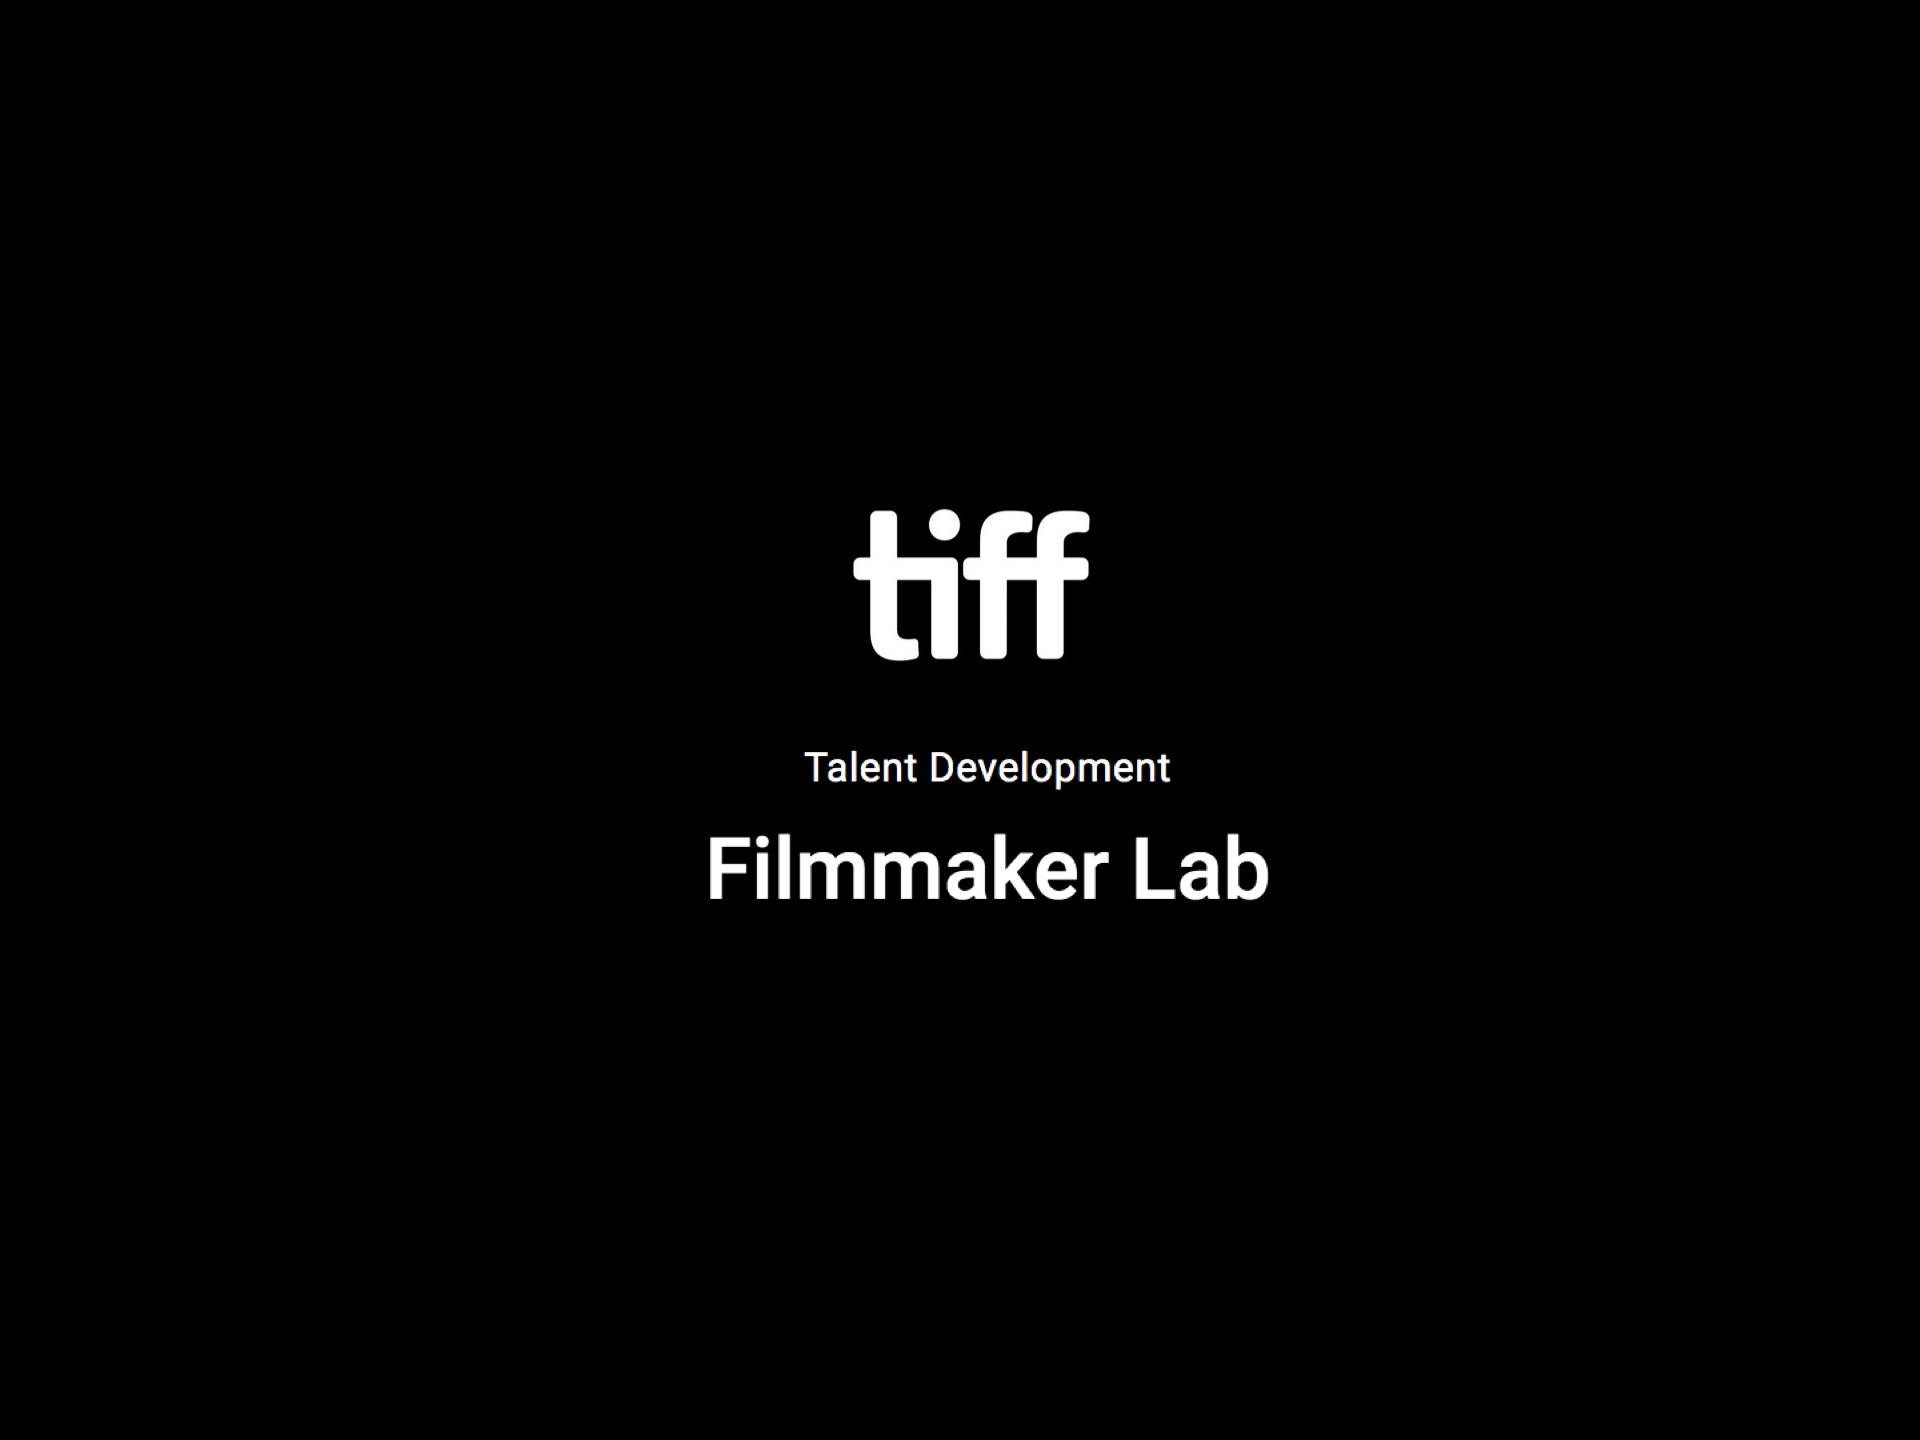 "[AUGUST 2019] Very proud to be selected for the  TIFF  Filmmaker Lab with my next project in development ""It's a Sad & Beautiful World"". Looking forward to taking part of this program in Toronto next month!  #tiff19   #filmmakerlab19"